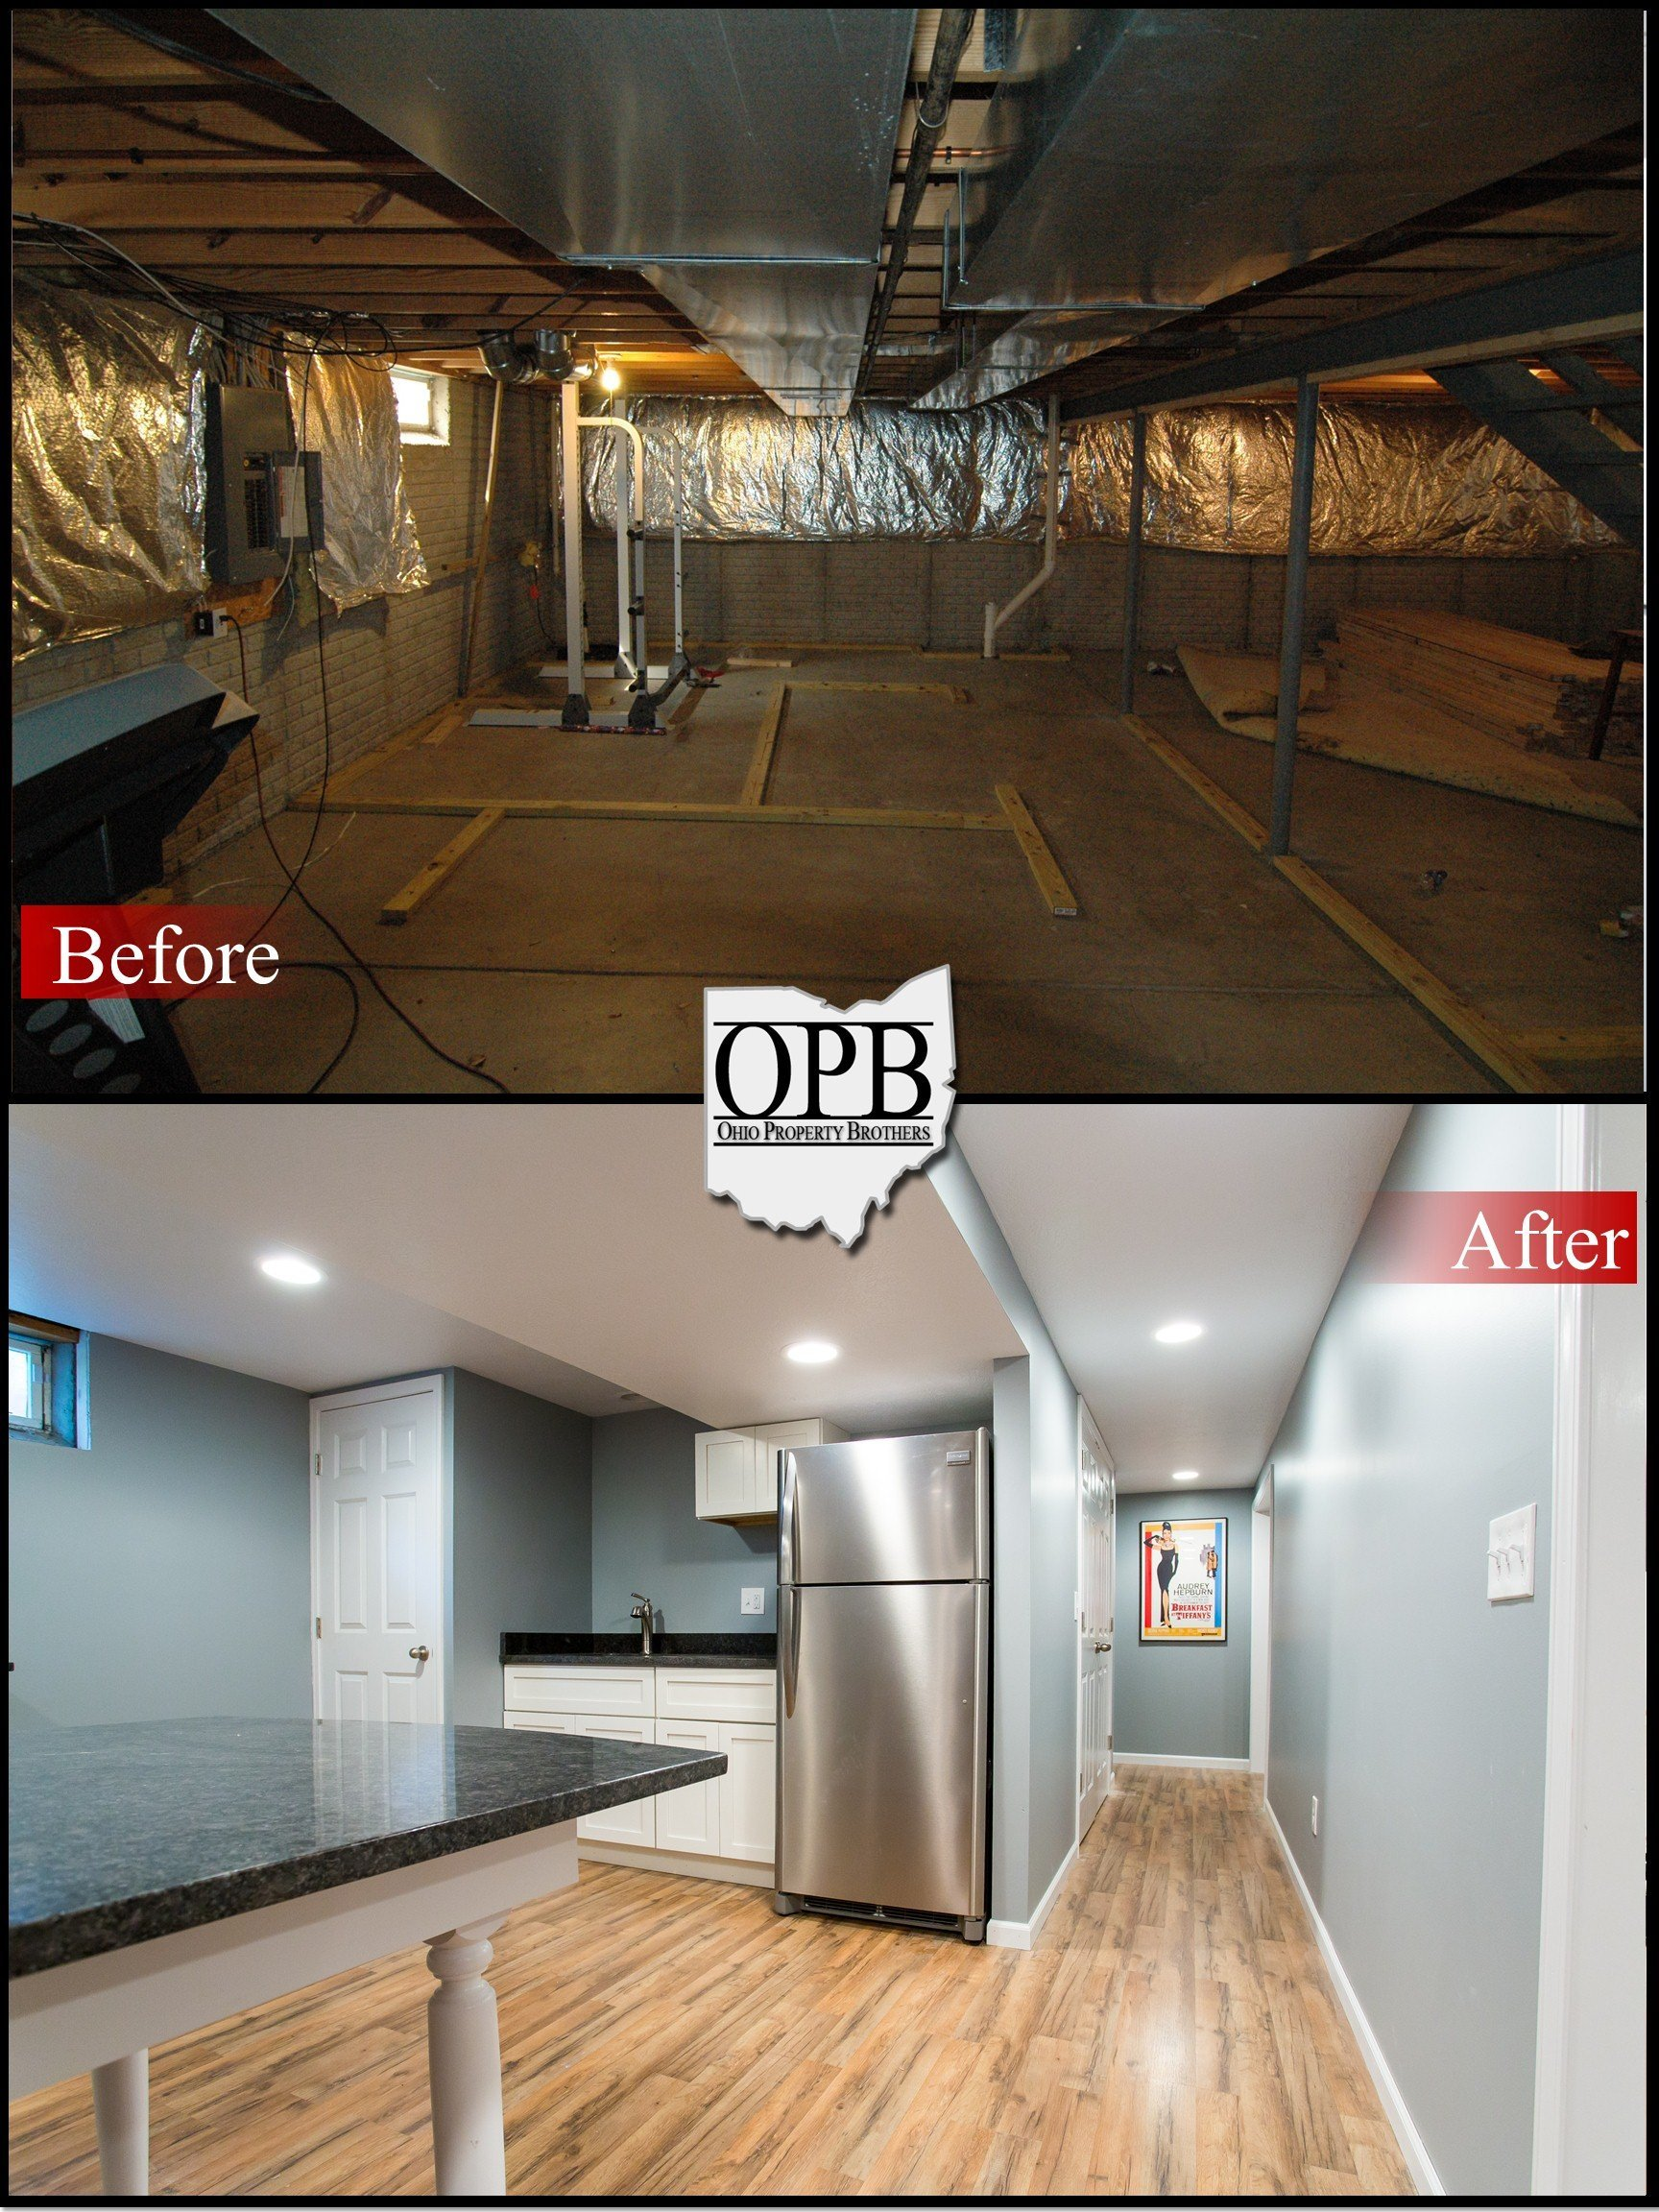 Before-After BUSCH_01 & Before/After u2013 Basement Remodel | Ohio Property Brothers